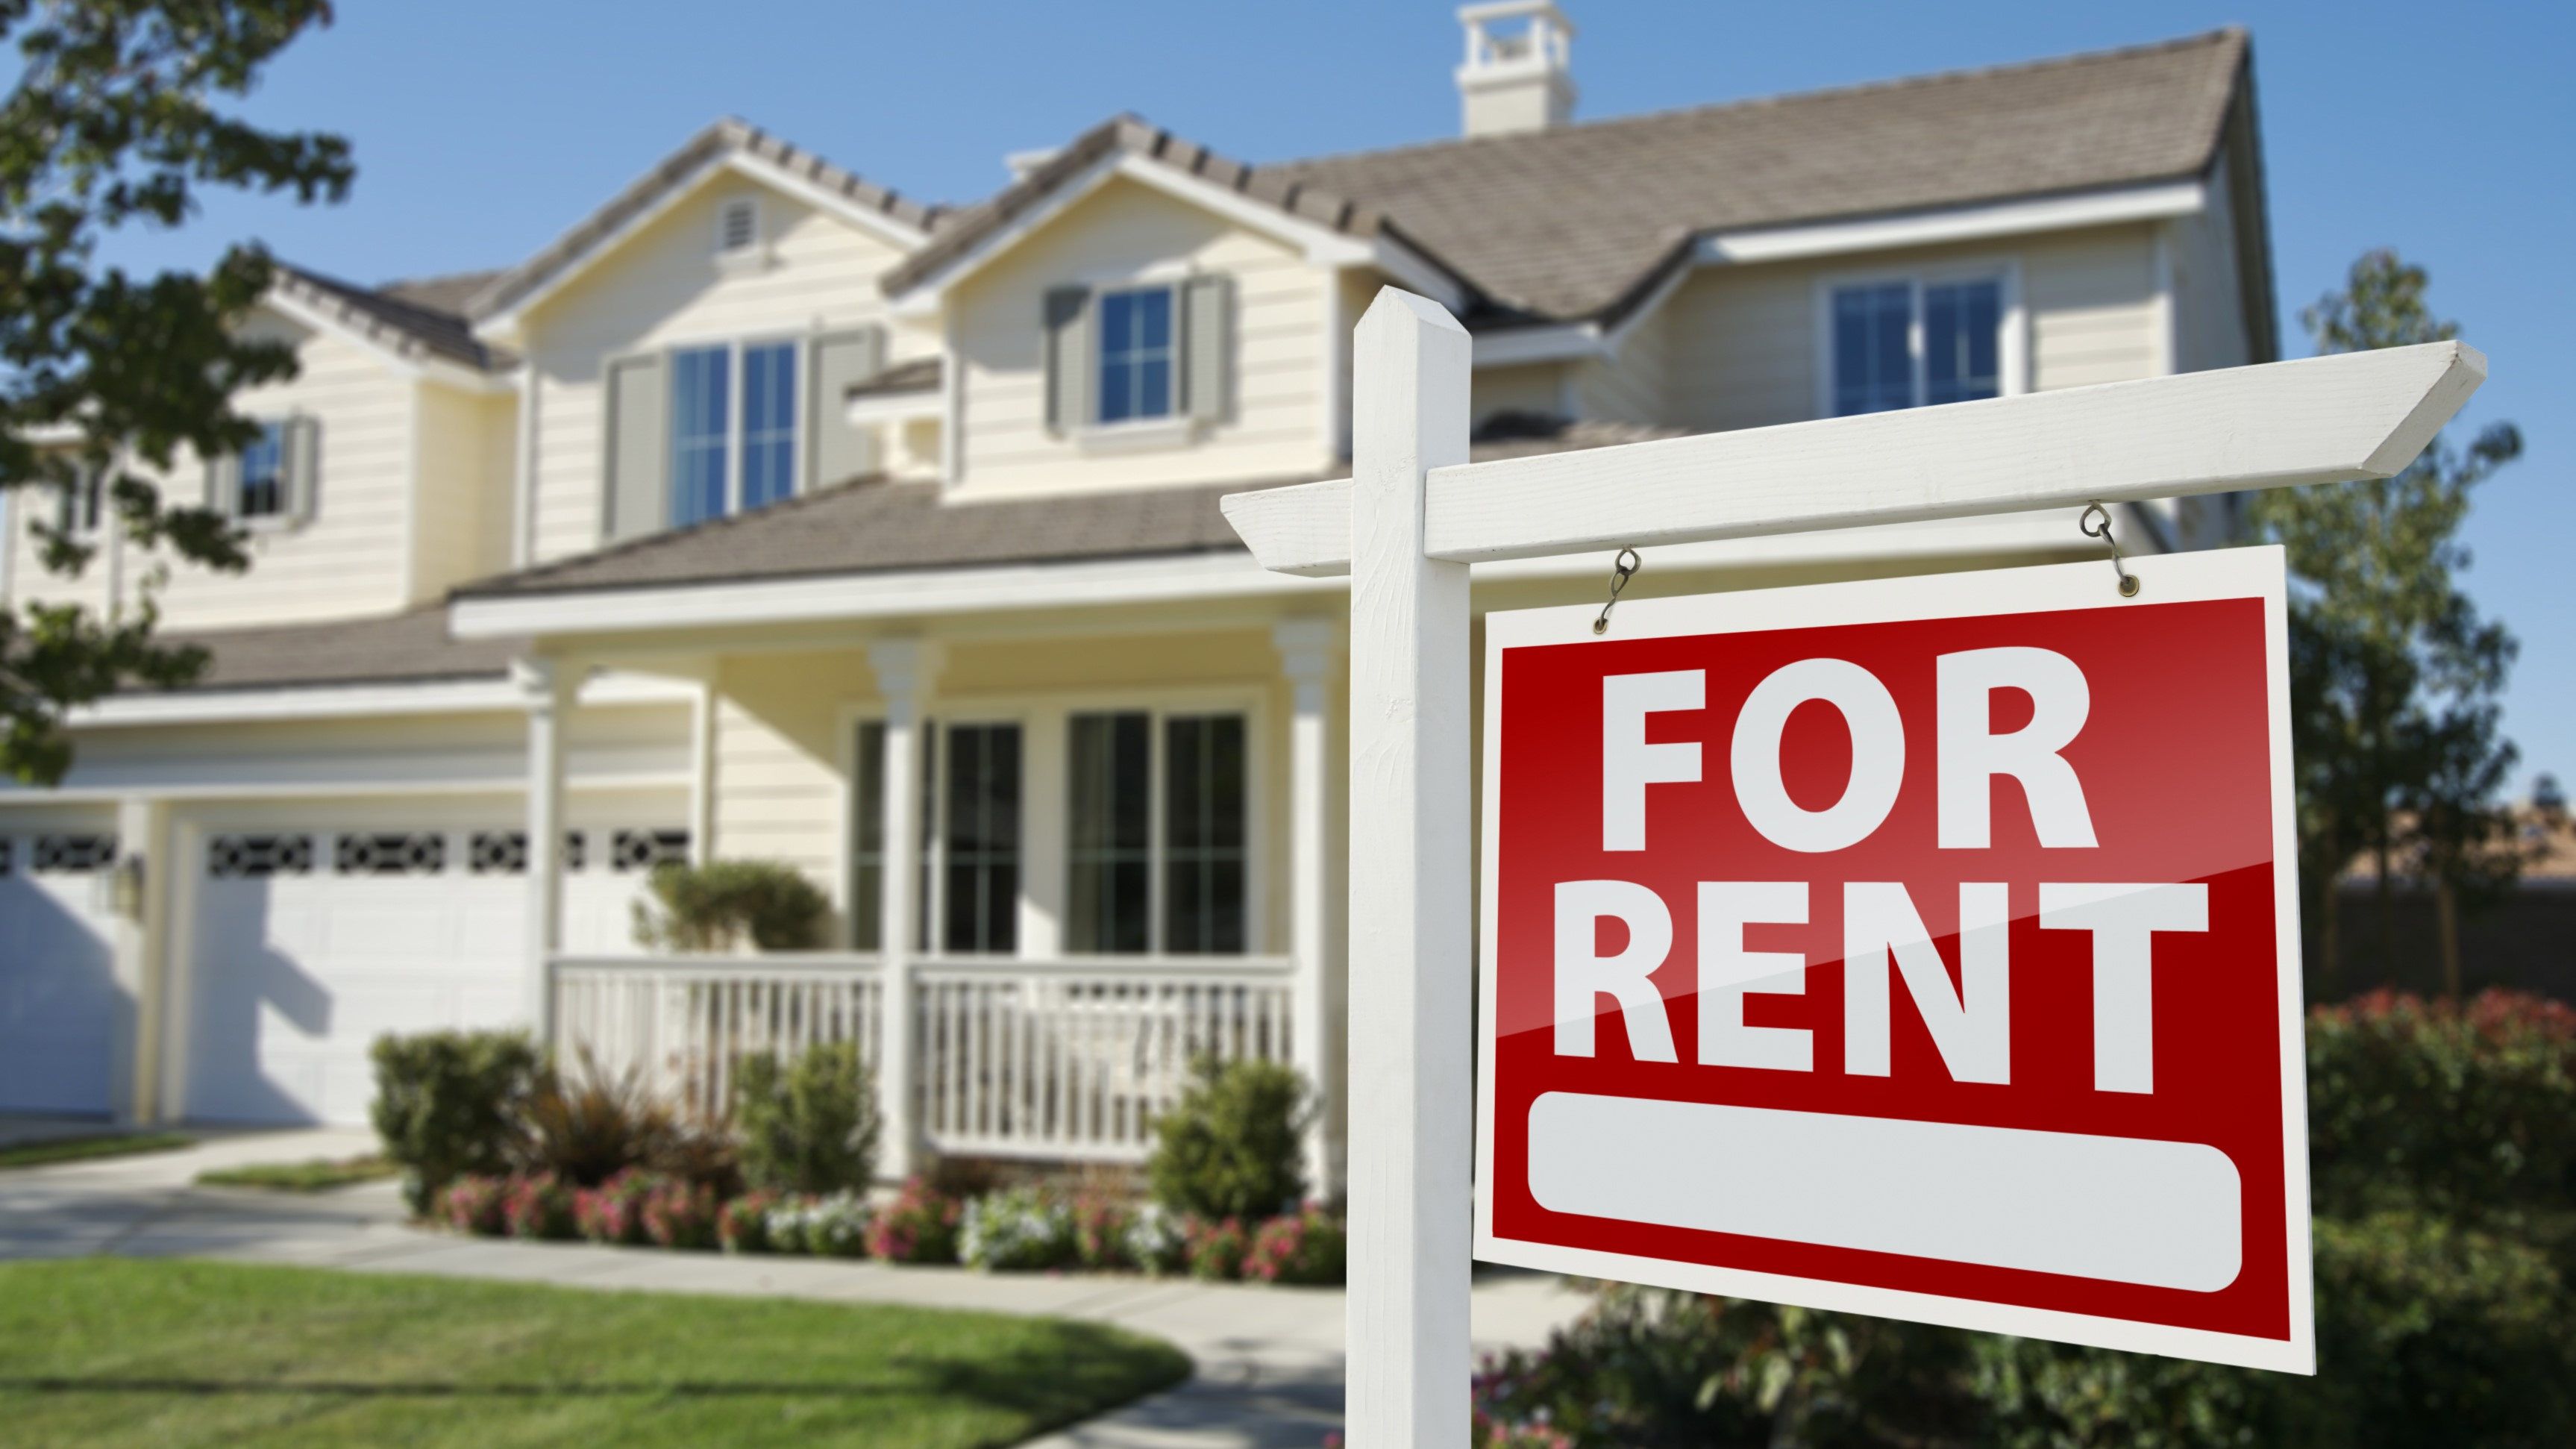 APEG Considerations in Owning Rental Property